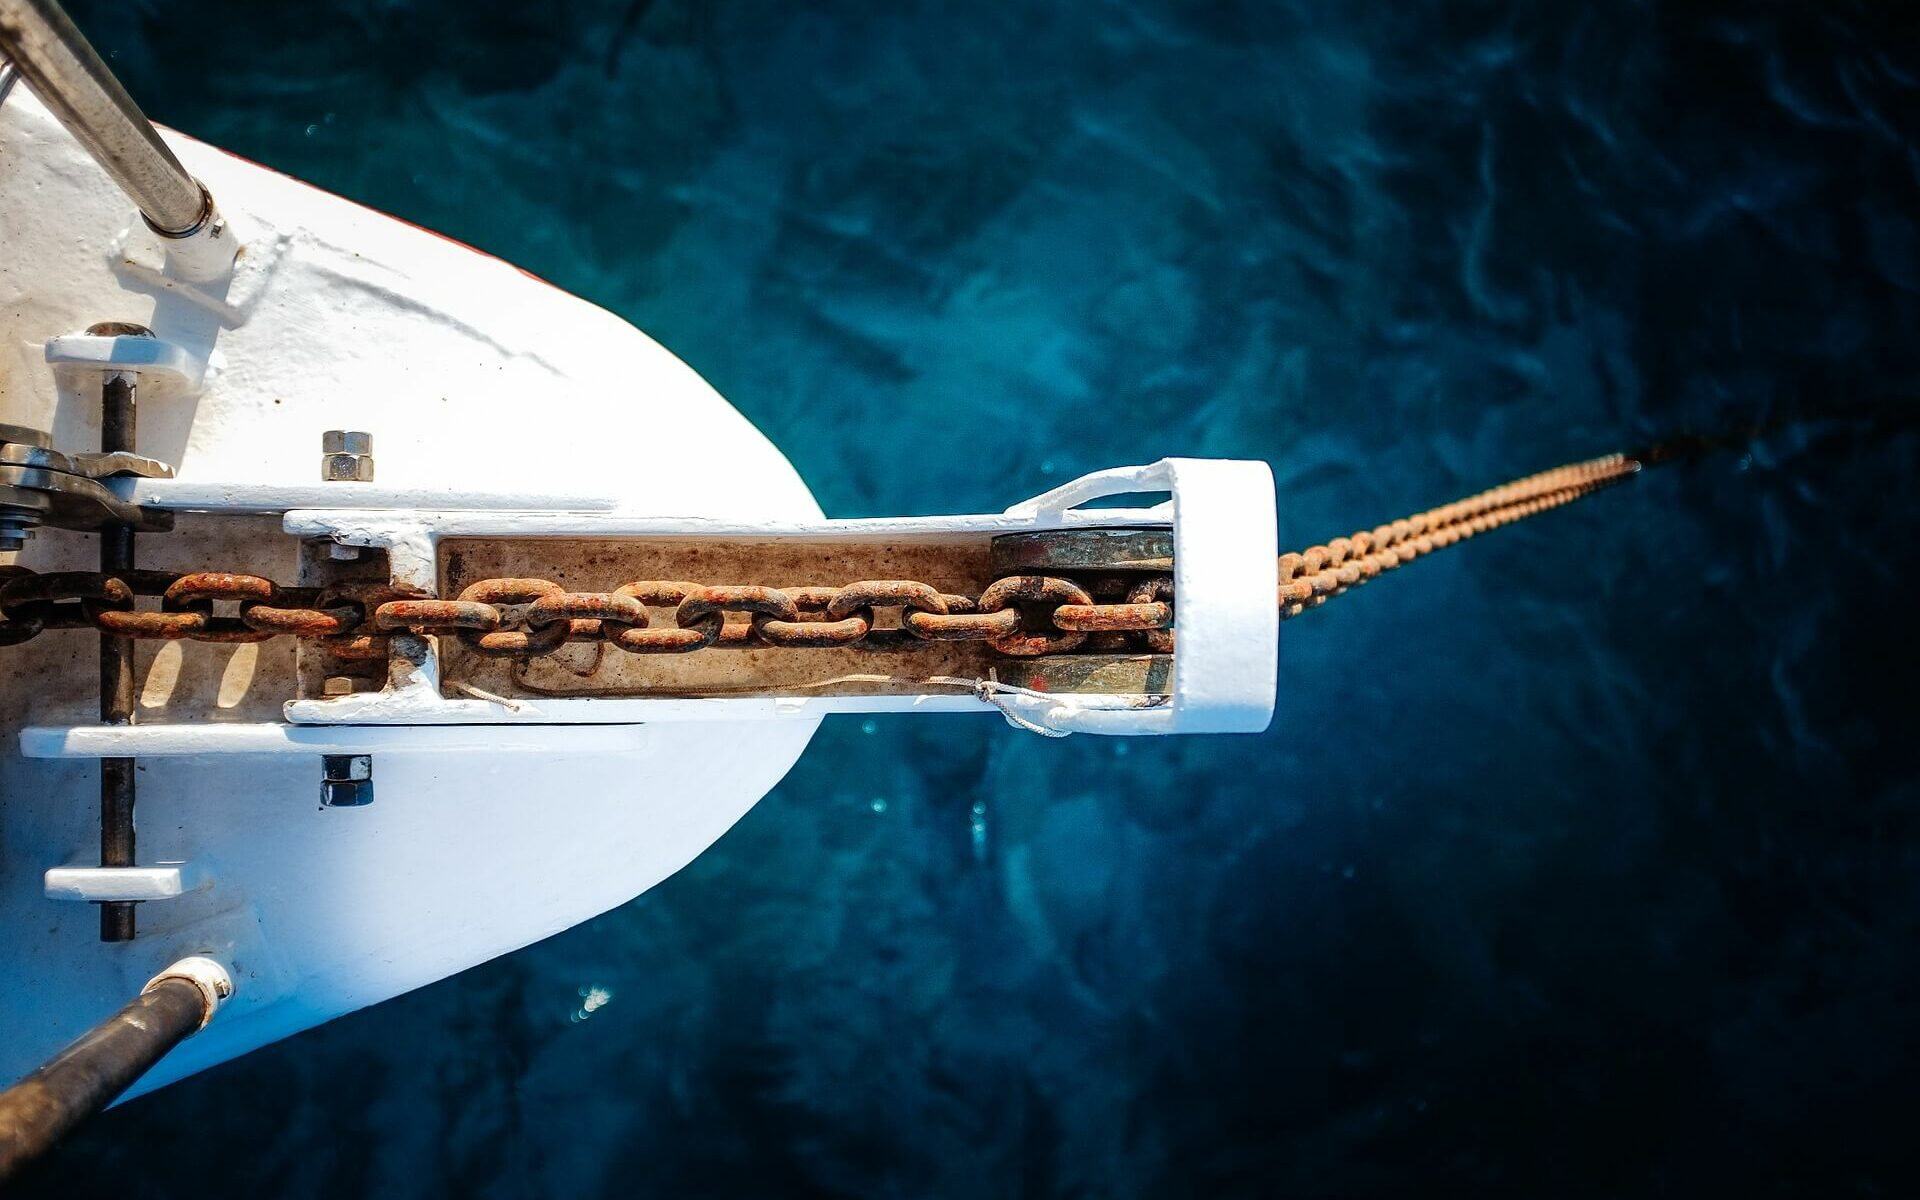 an anchor chain hangs off the bow of a white boat into cobalt blue waters